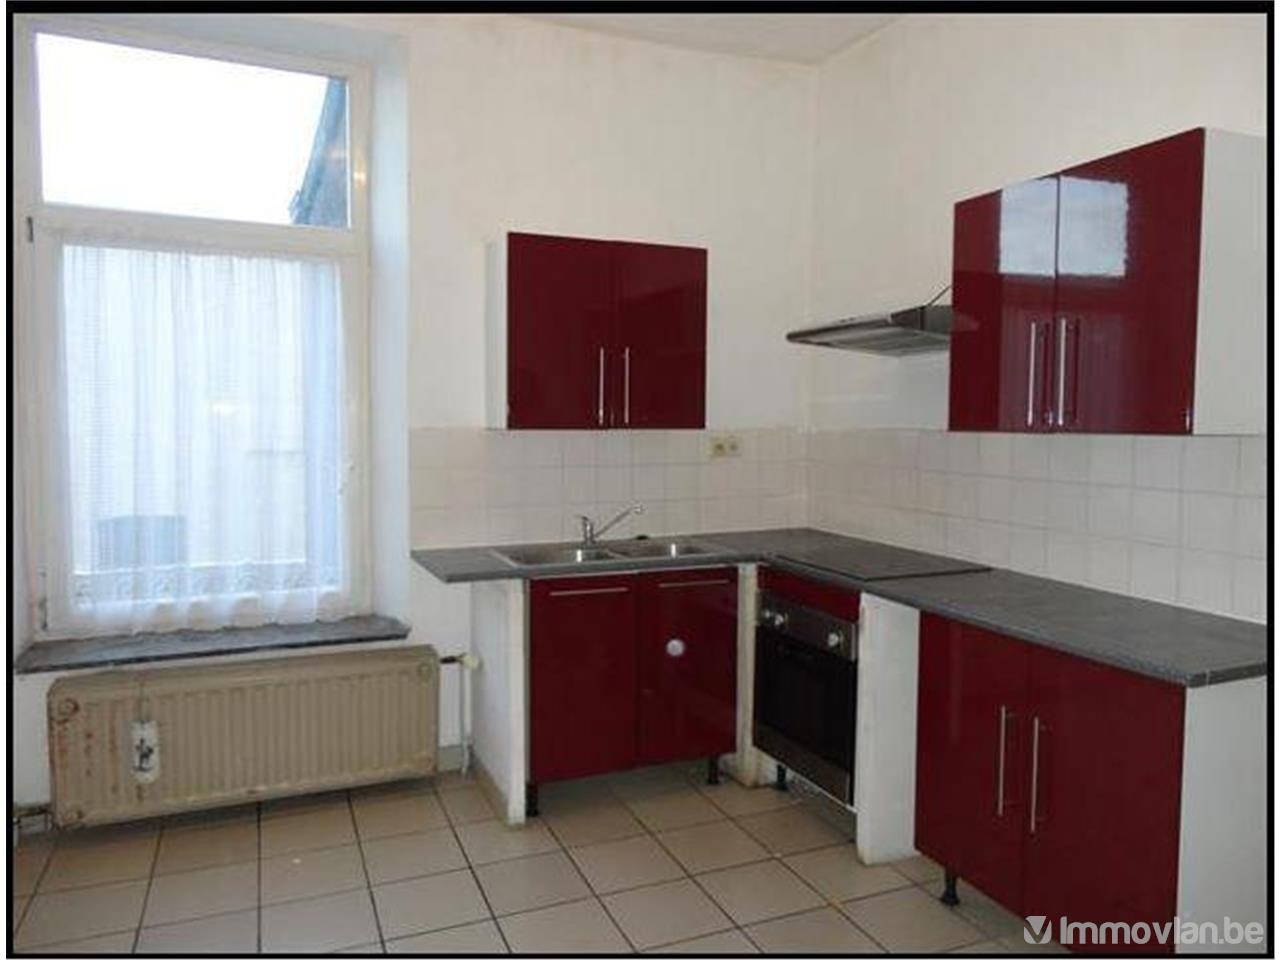 Cuisine équipée Studio Flat Studio For Rent In Marchienne Au Pont Vwc77316